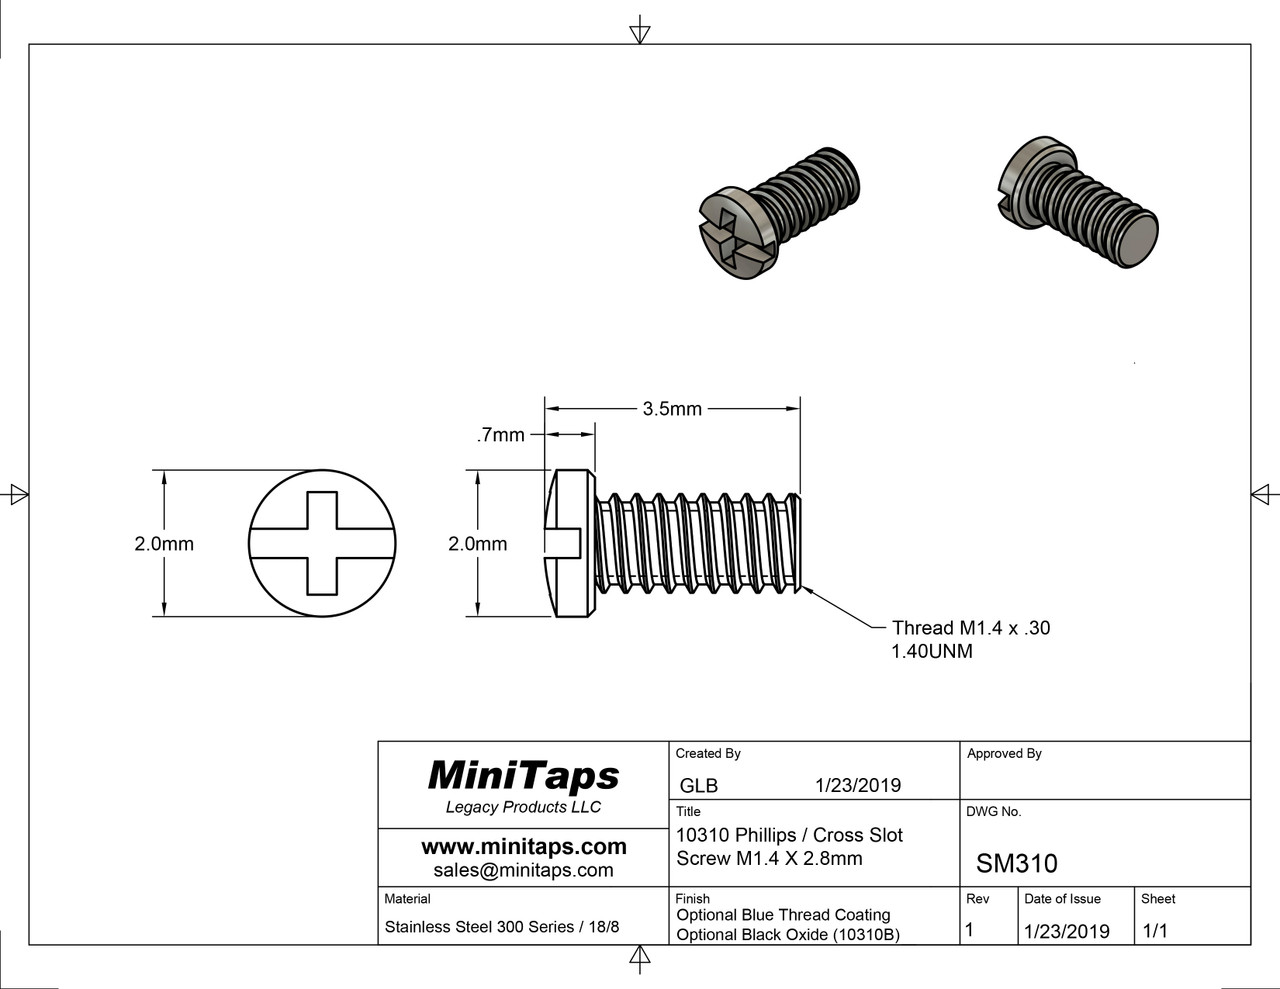 """Machine Screw Pan Head with Philips X-Slot Drive  Thread M1.4, Pitch .30mm, Overall Length 4.0mm, Threaded Length 3.20mm (Equivalent to 1/8"""")  Stainless Steel  Optional coated thread to help prevent screw from working loose.  Price is for 100 count package with bulk pricing available."""